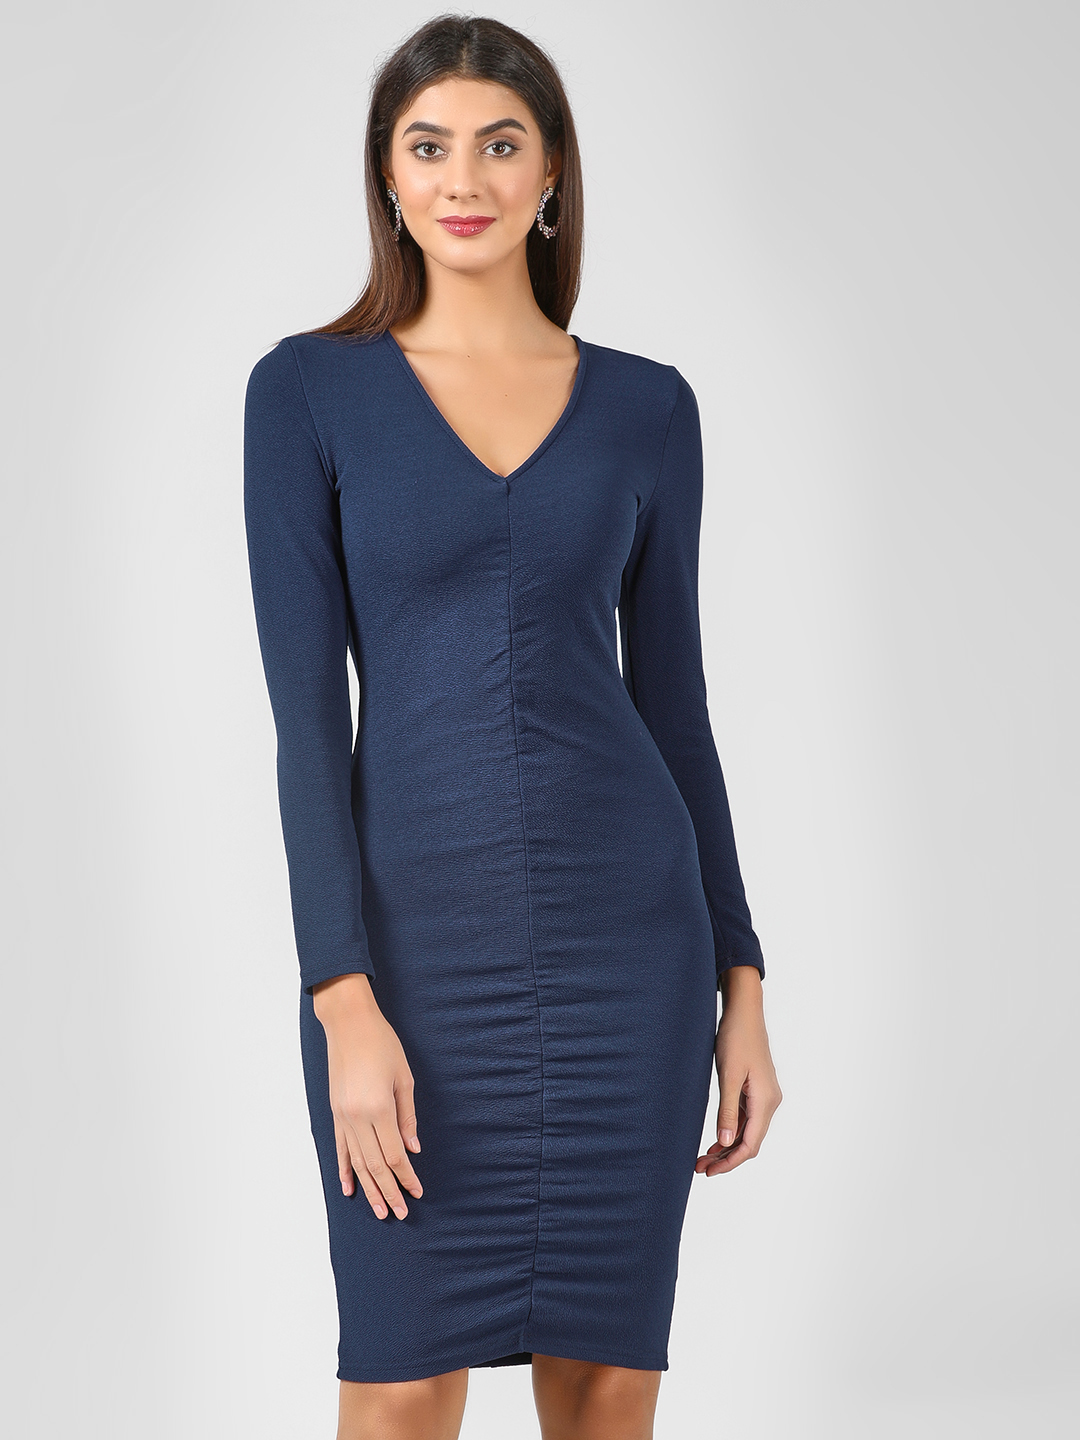 Ax Paris Navy Ruched Front Bodycon Dress 1